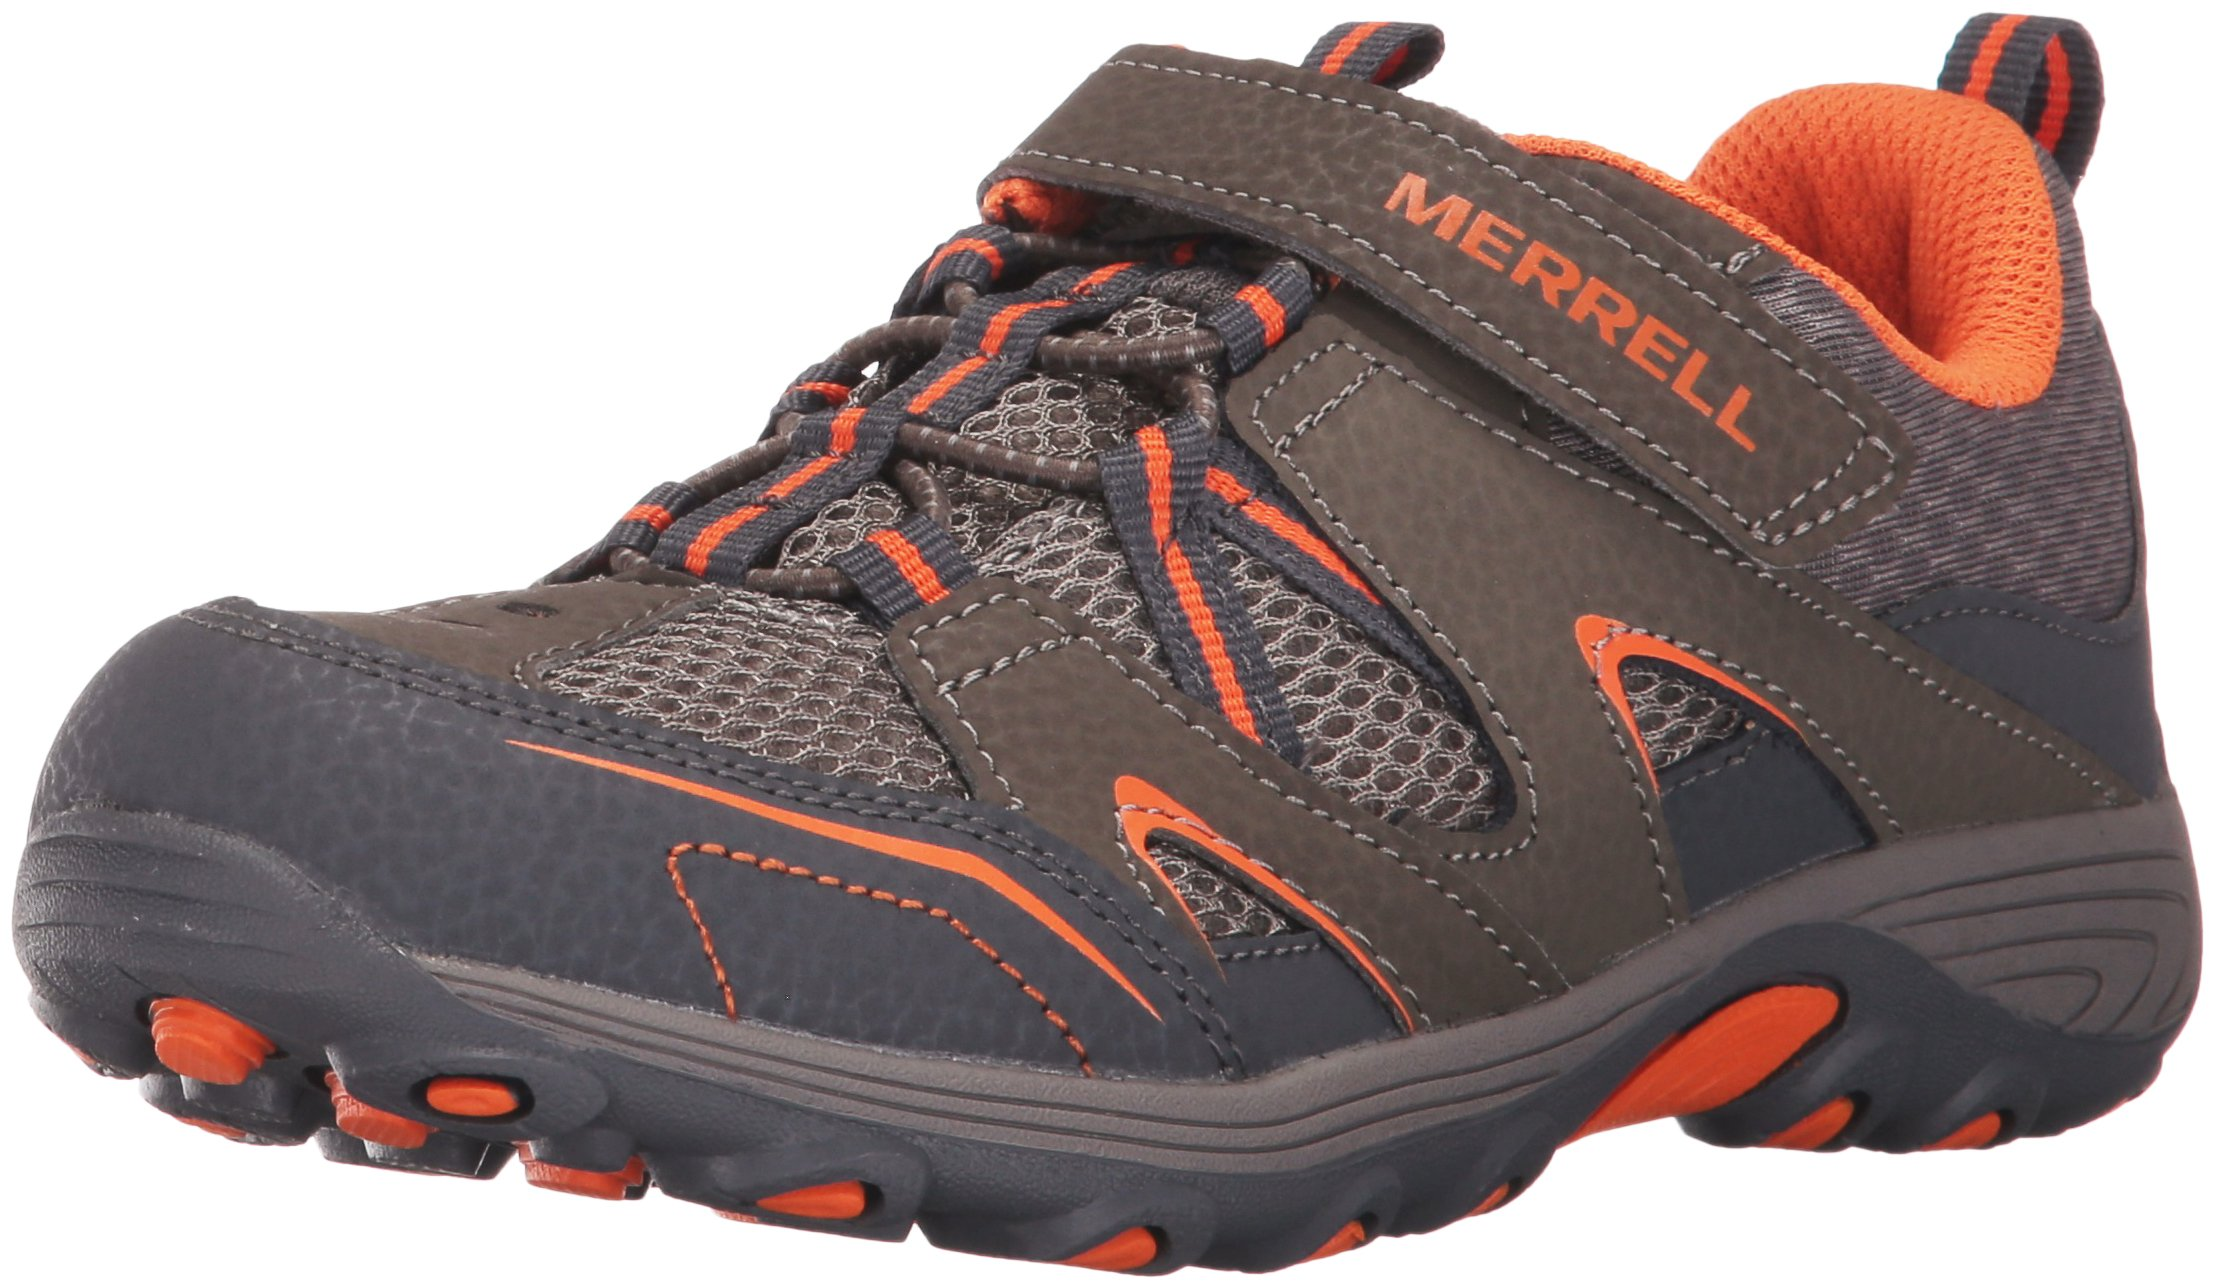 Merrell Trail Chaser Hiking Shoe (Little Kid/Big Kid), Gunsmoke/Orange, 6 M US Big Kid